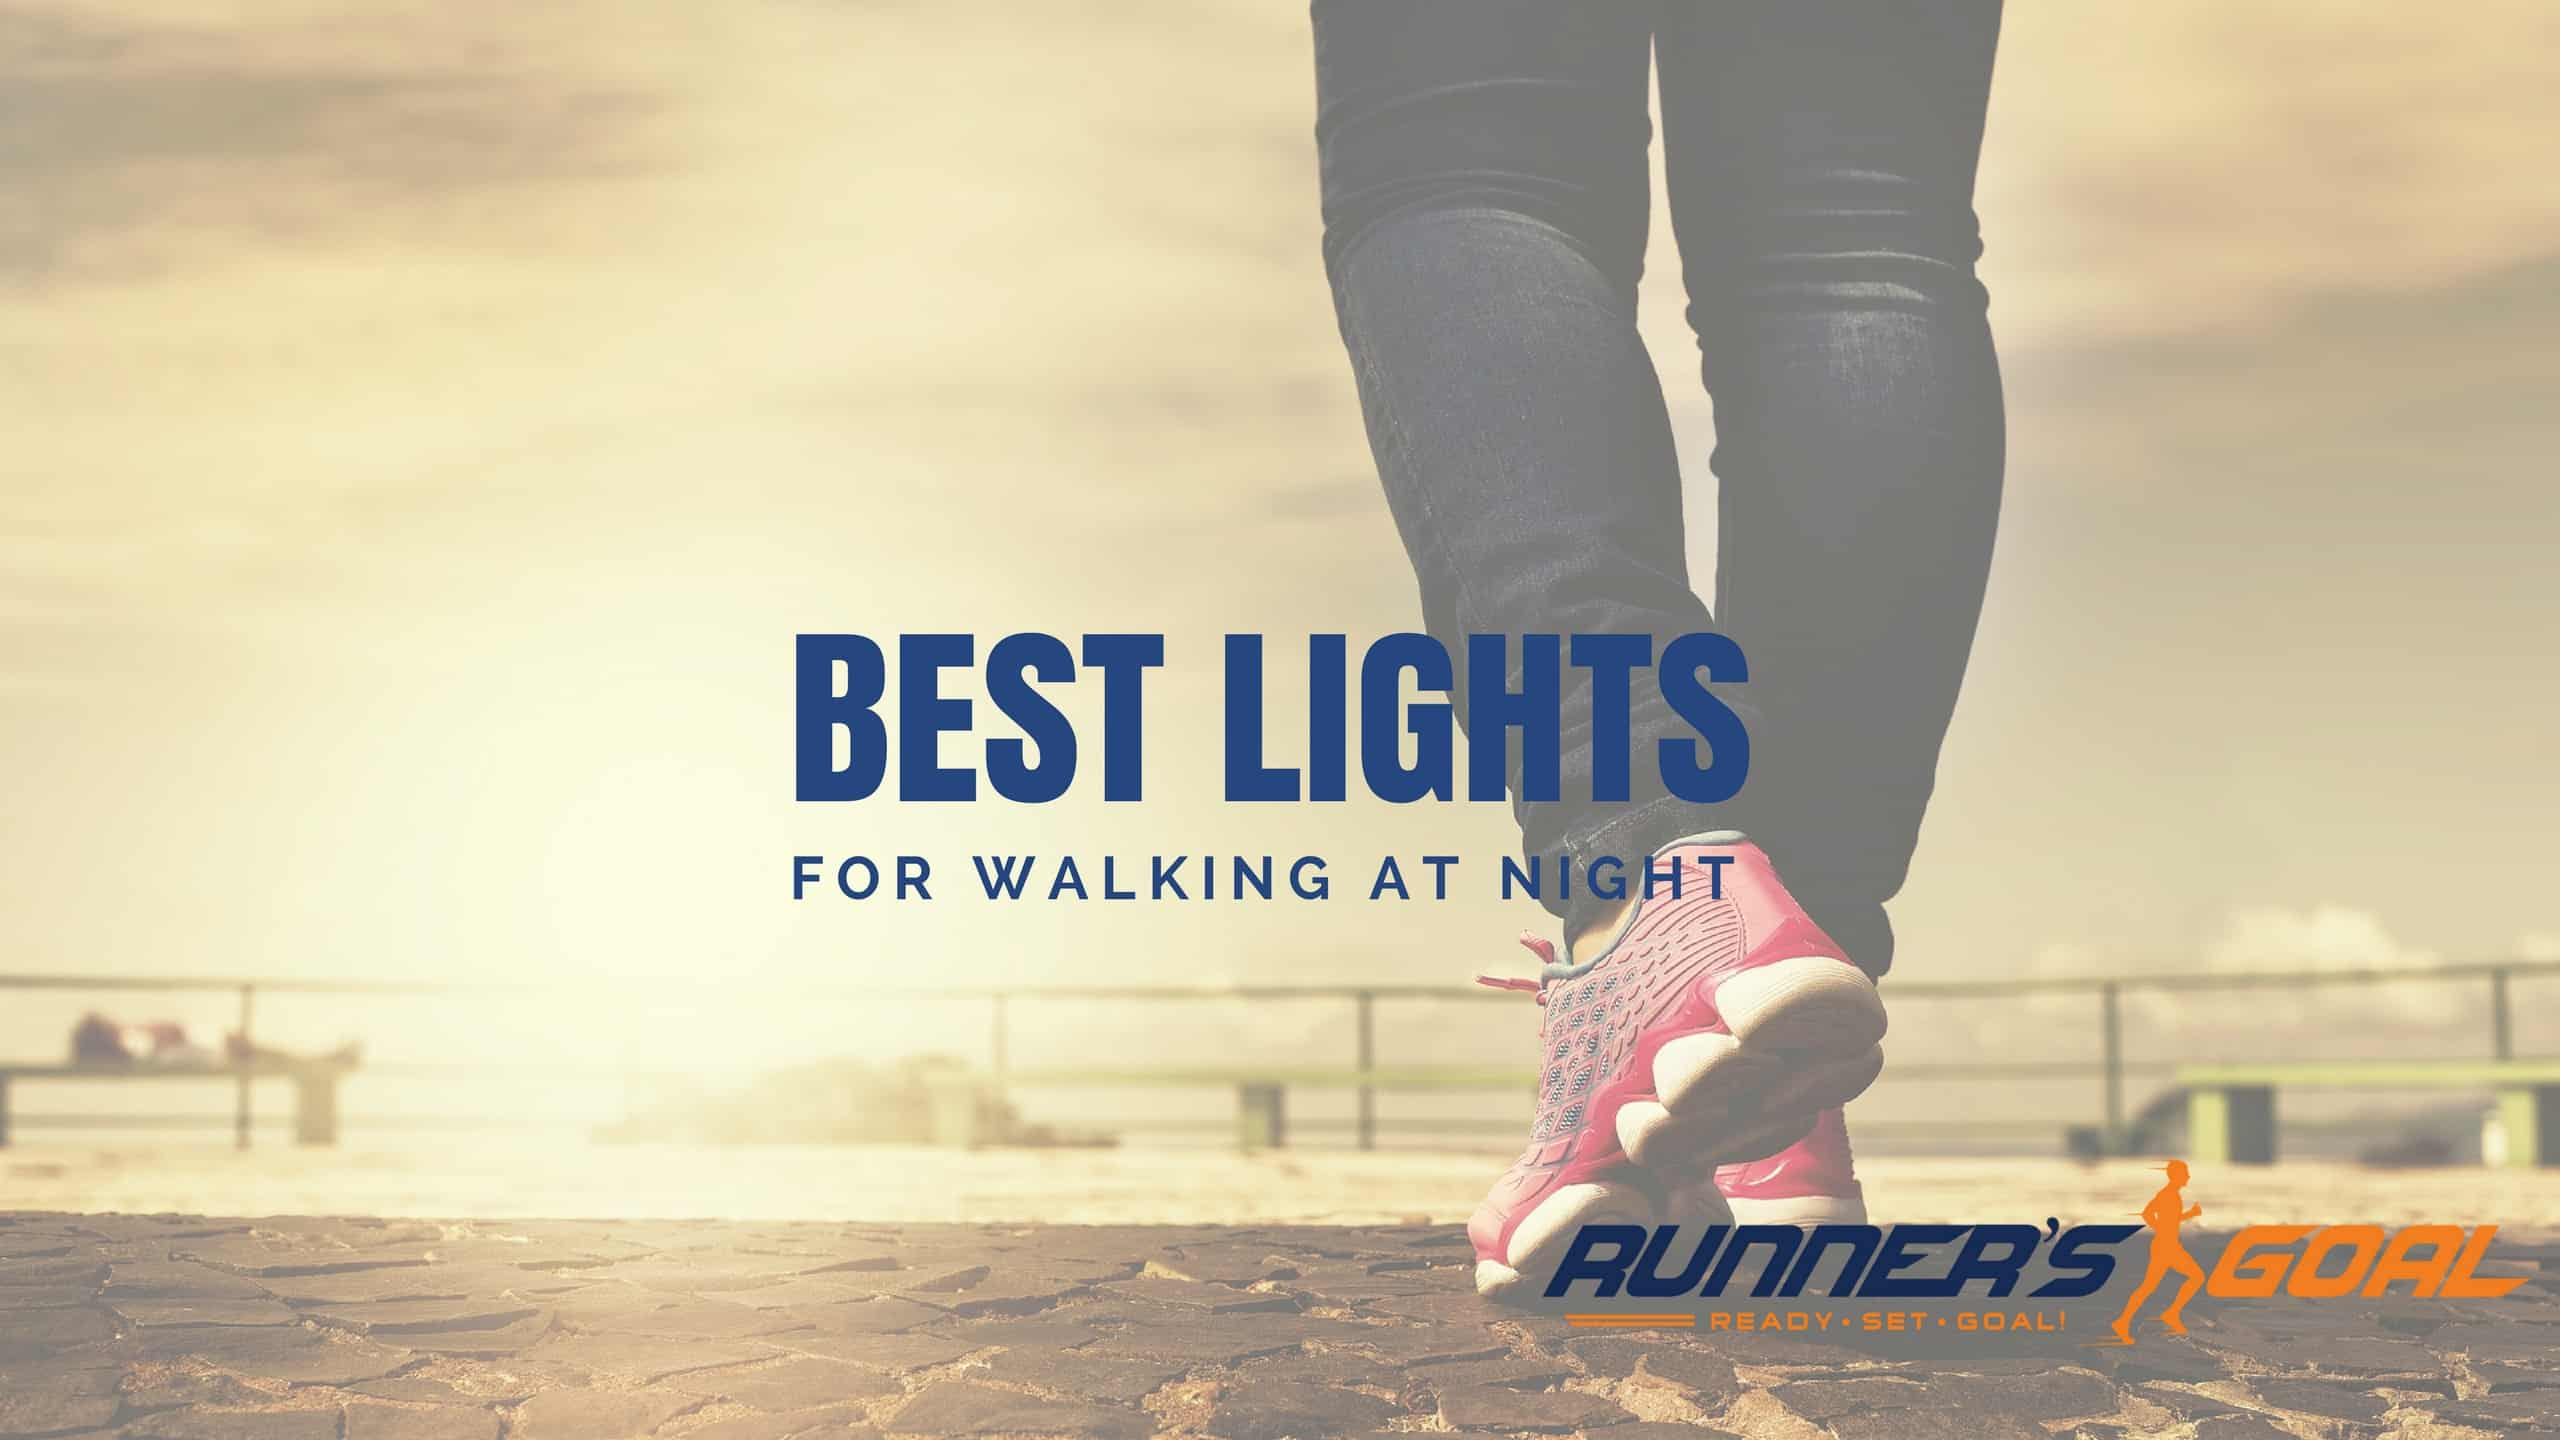 Best Lights for Walking at Night